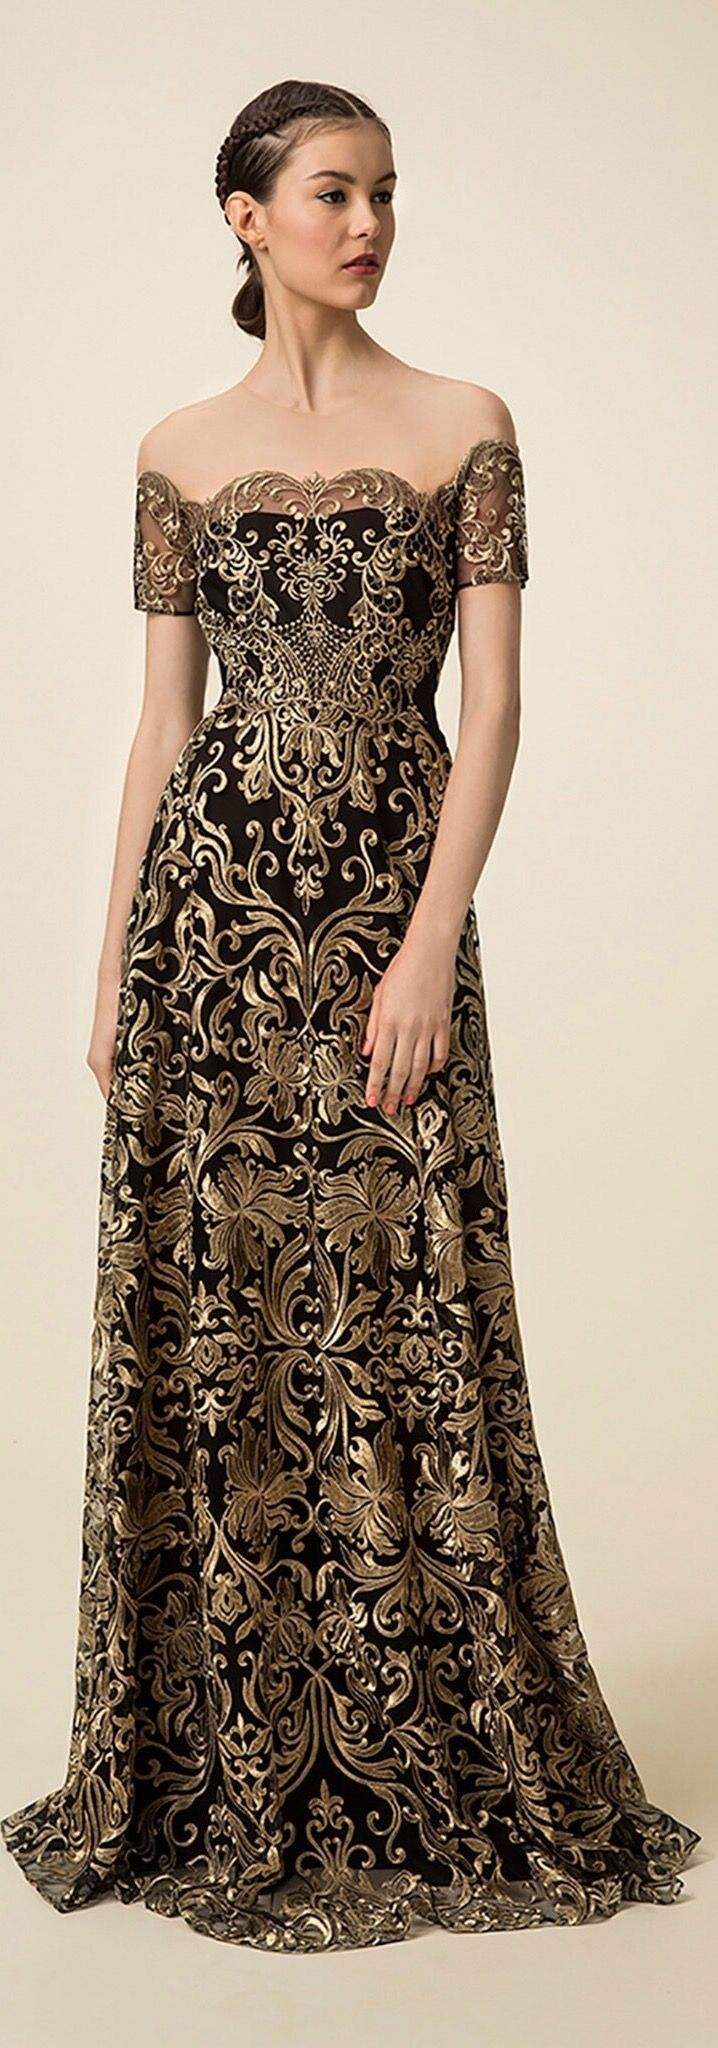 Marchesa Evening Gowns Evening Dresses Gowns Dresses